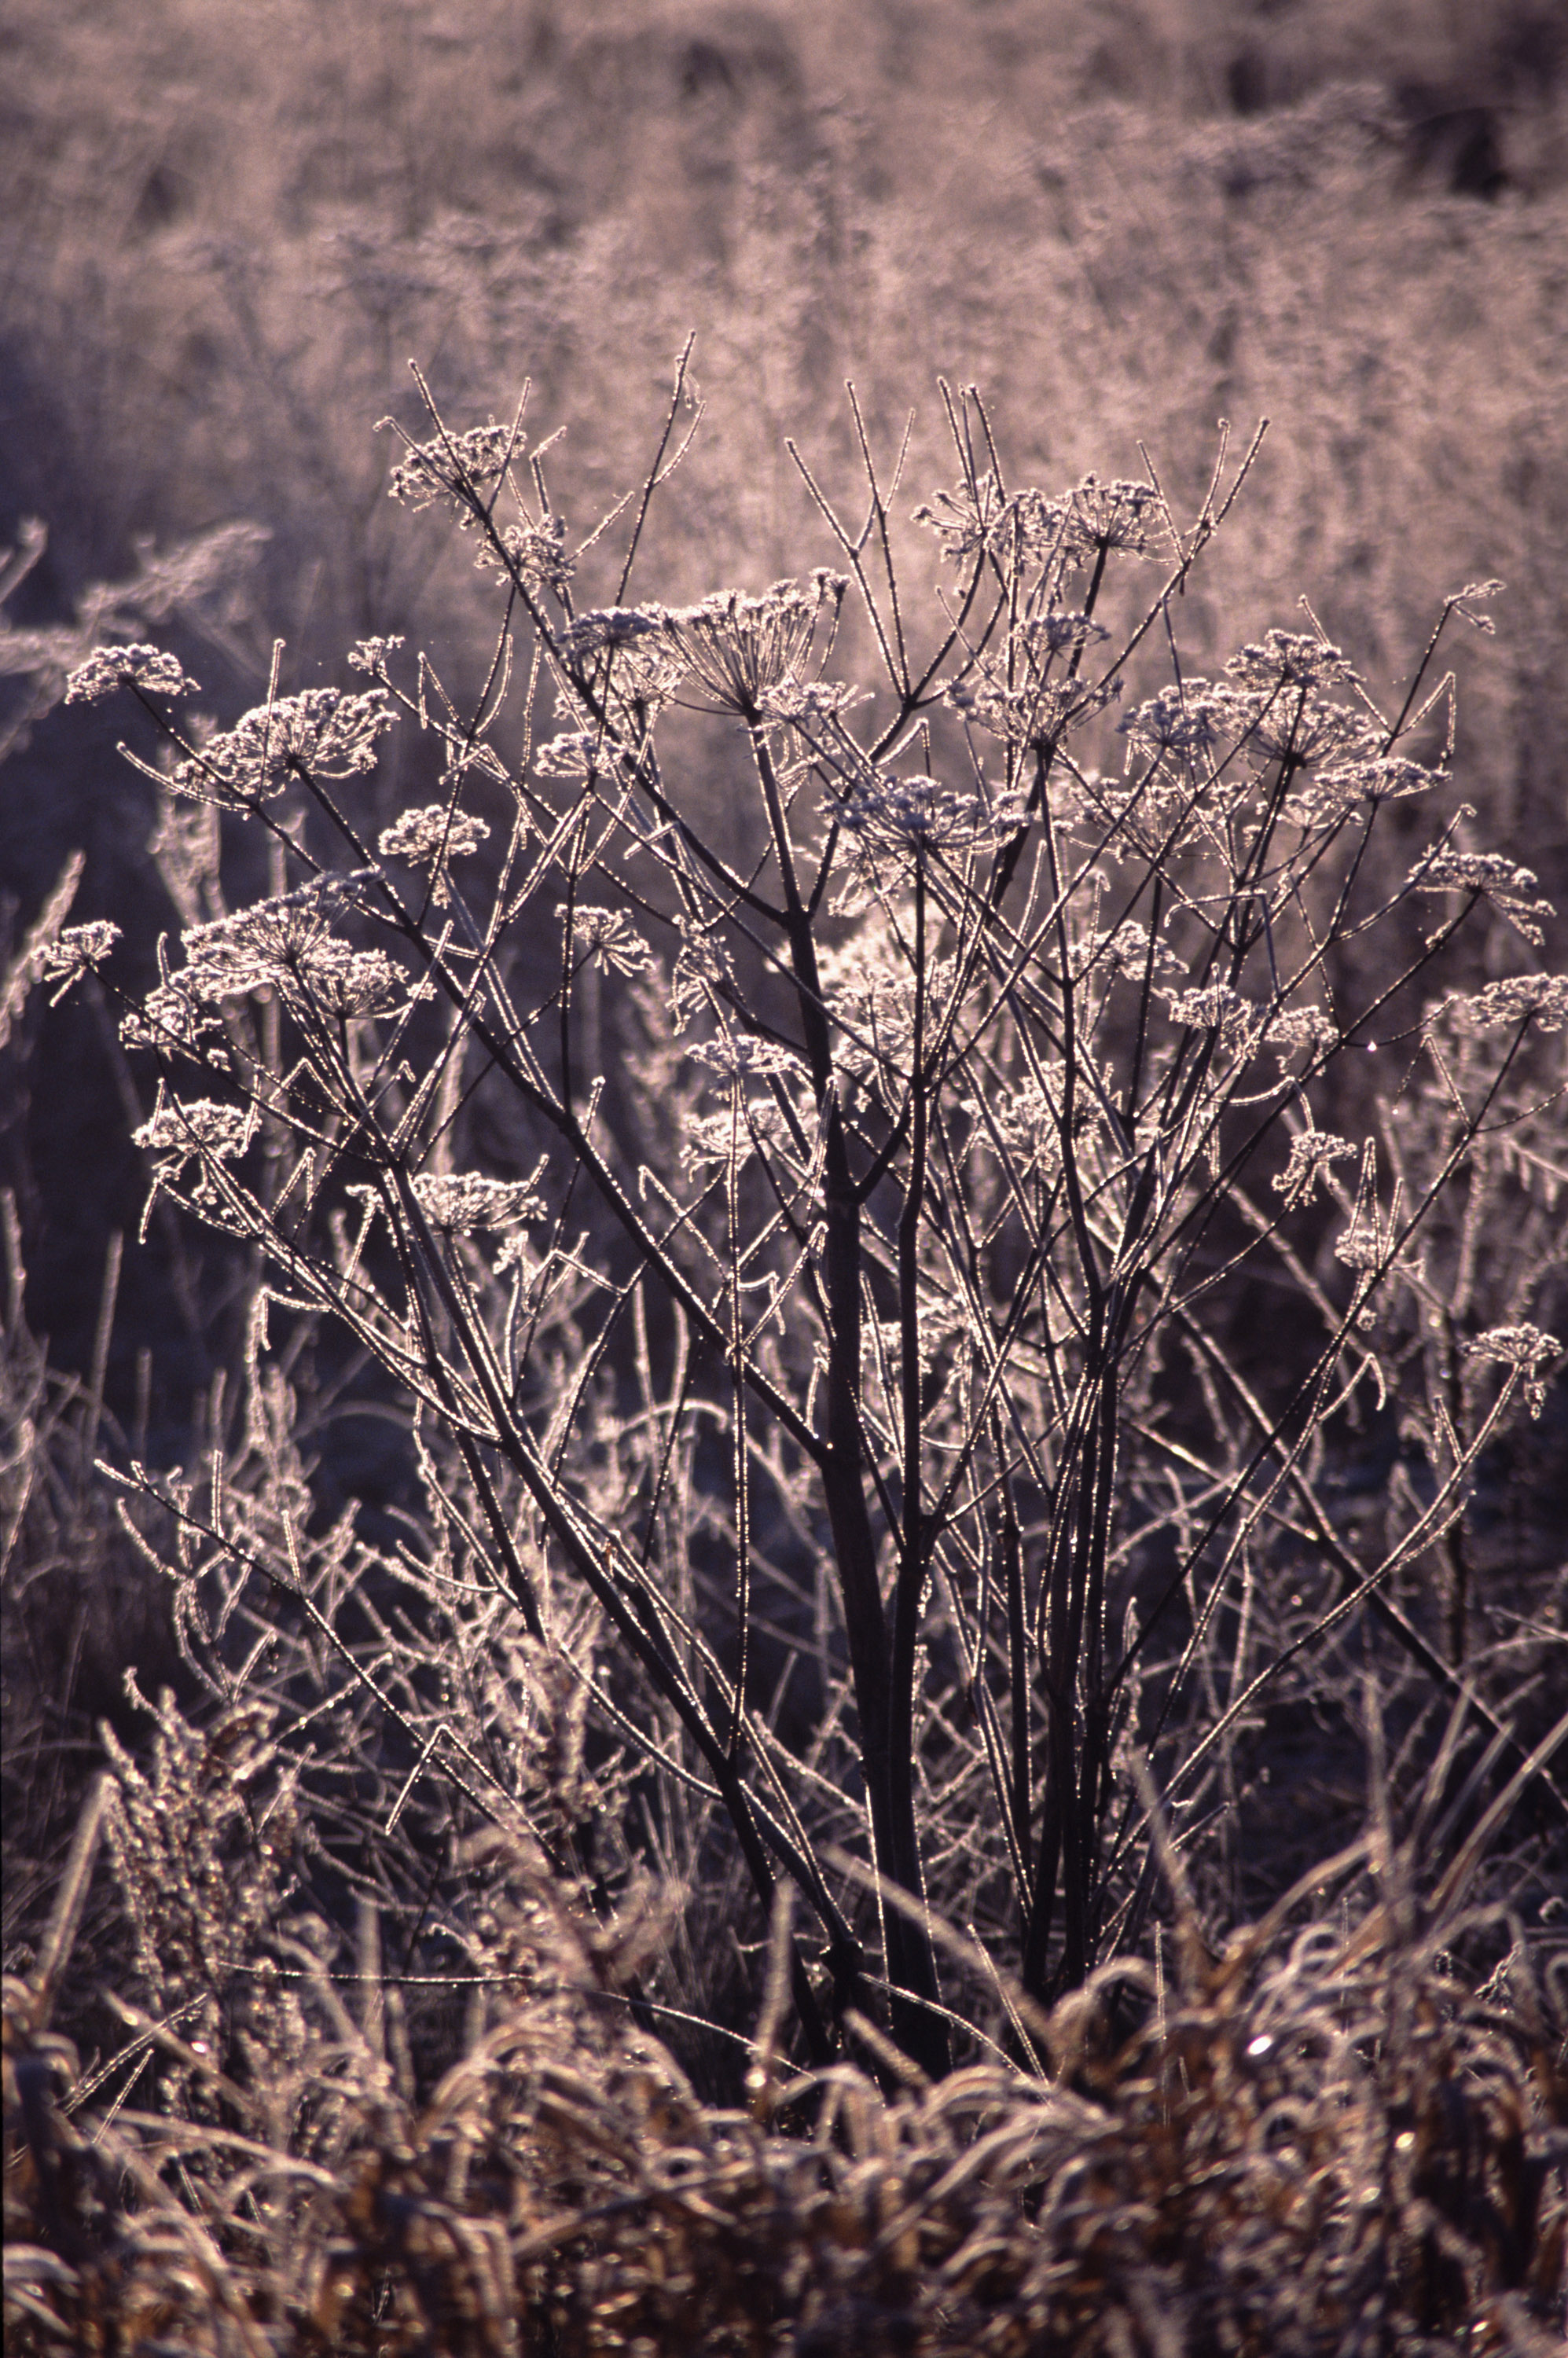 backlit ice crystals on frozen meadow plants glinting in the sun on a cold winter morning